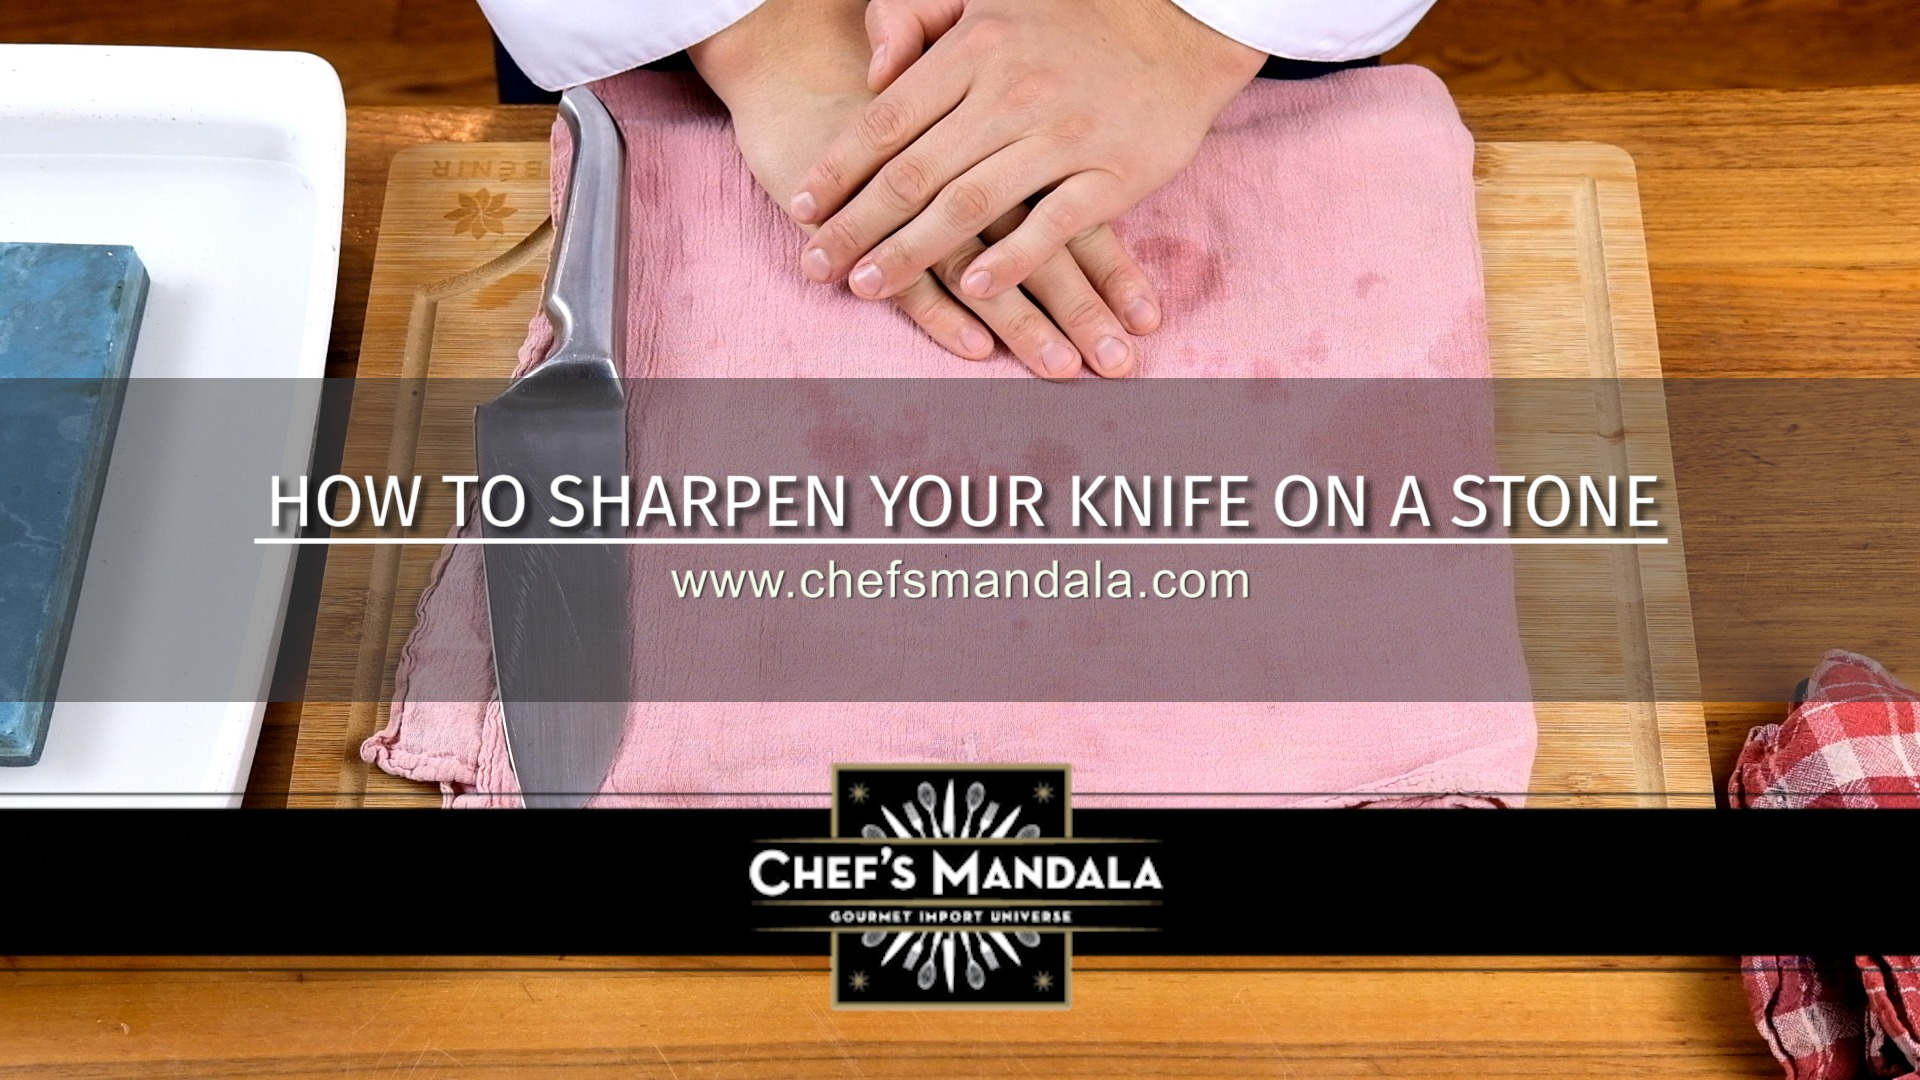 HOW TO SHARPEN YOUR KNIFE ON A STONE